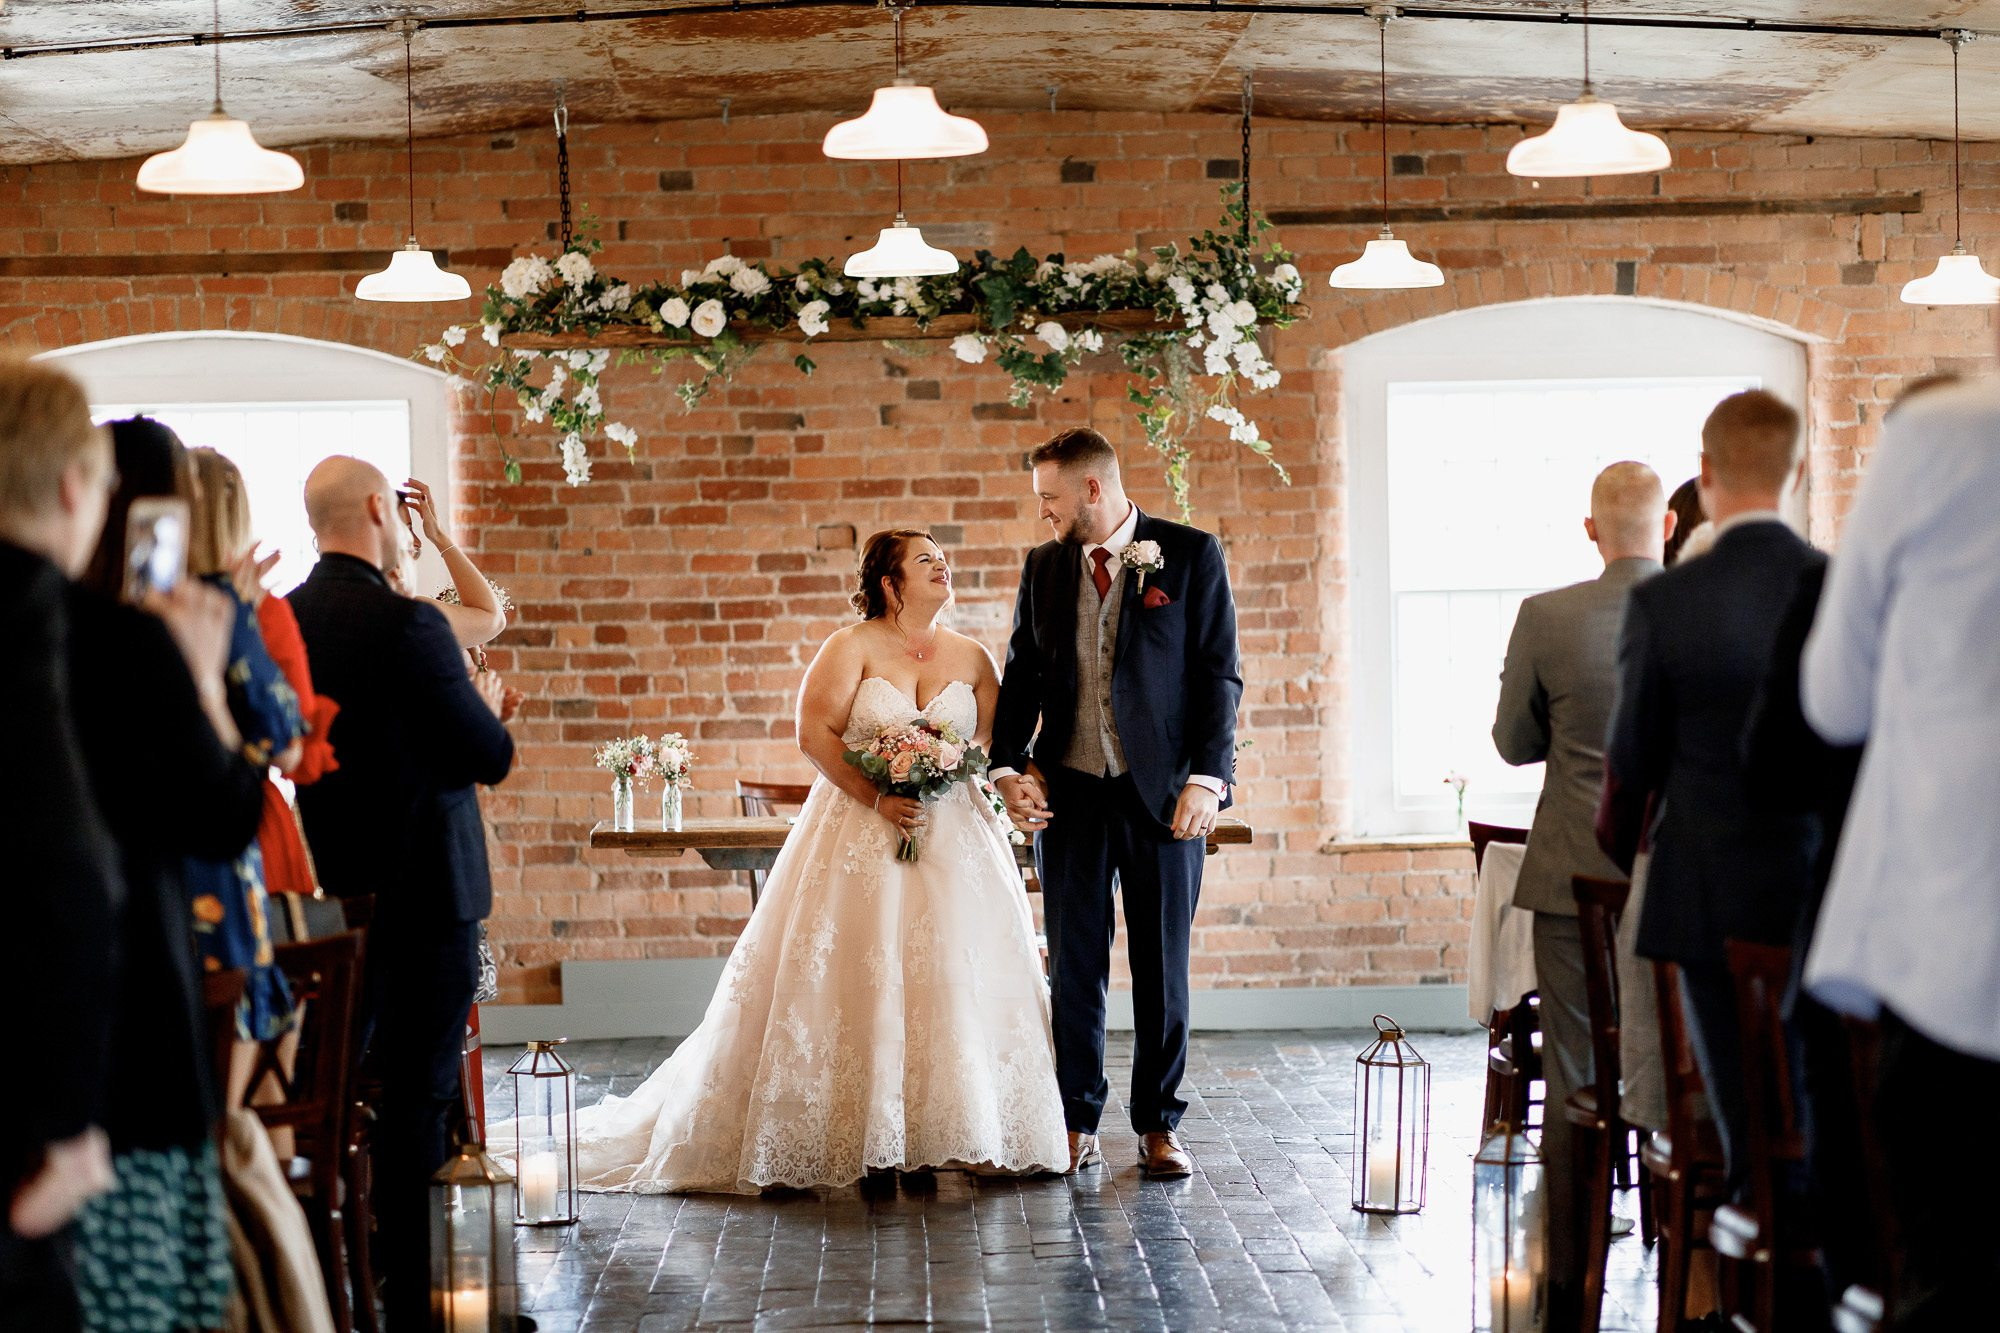 Bride and groom getting married at The West Mill